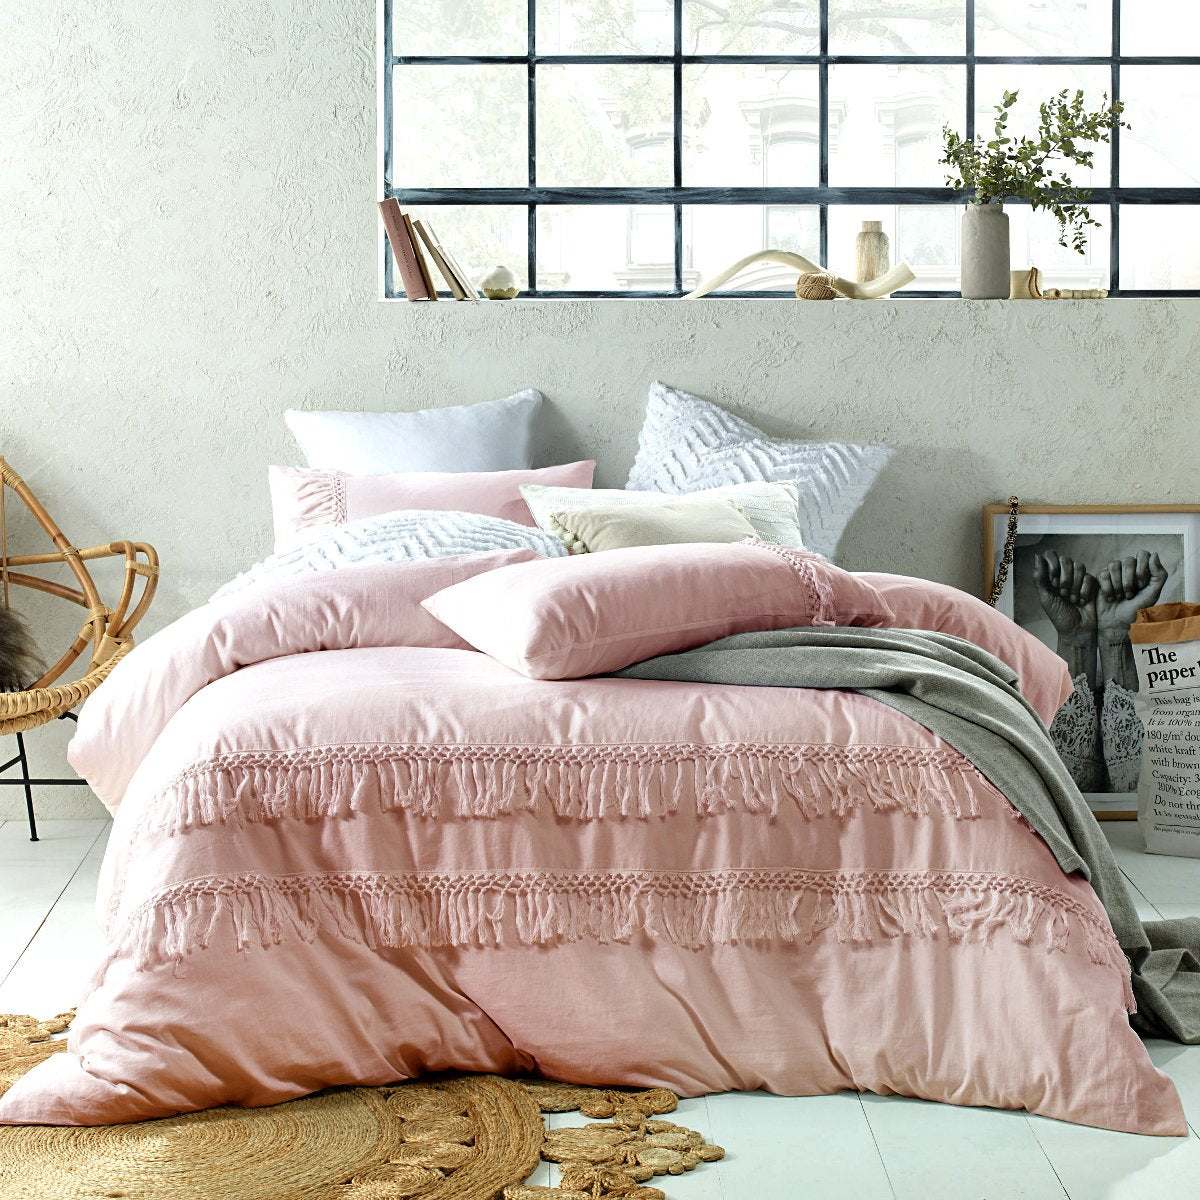 Tassels Blush Duvet cover set. Cotton Linen Quilt cover set